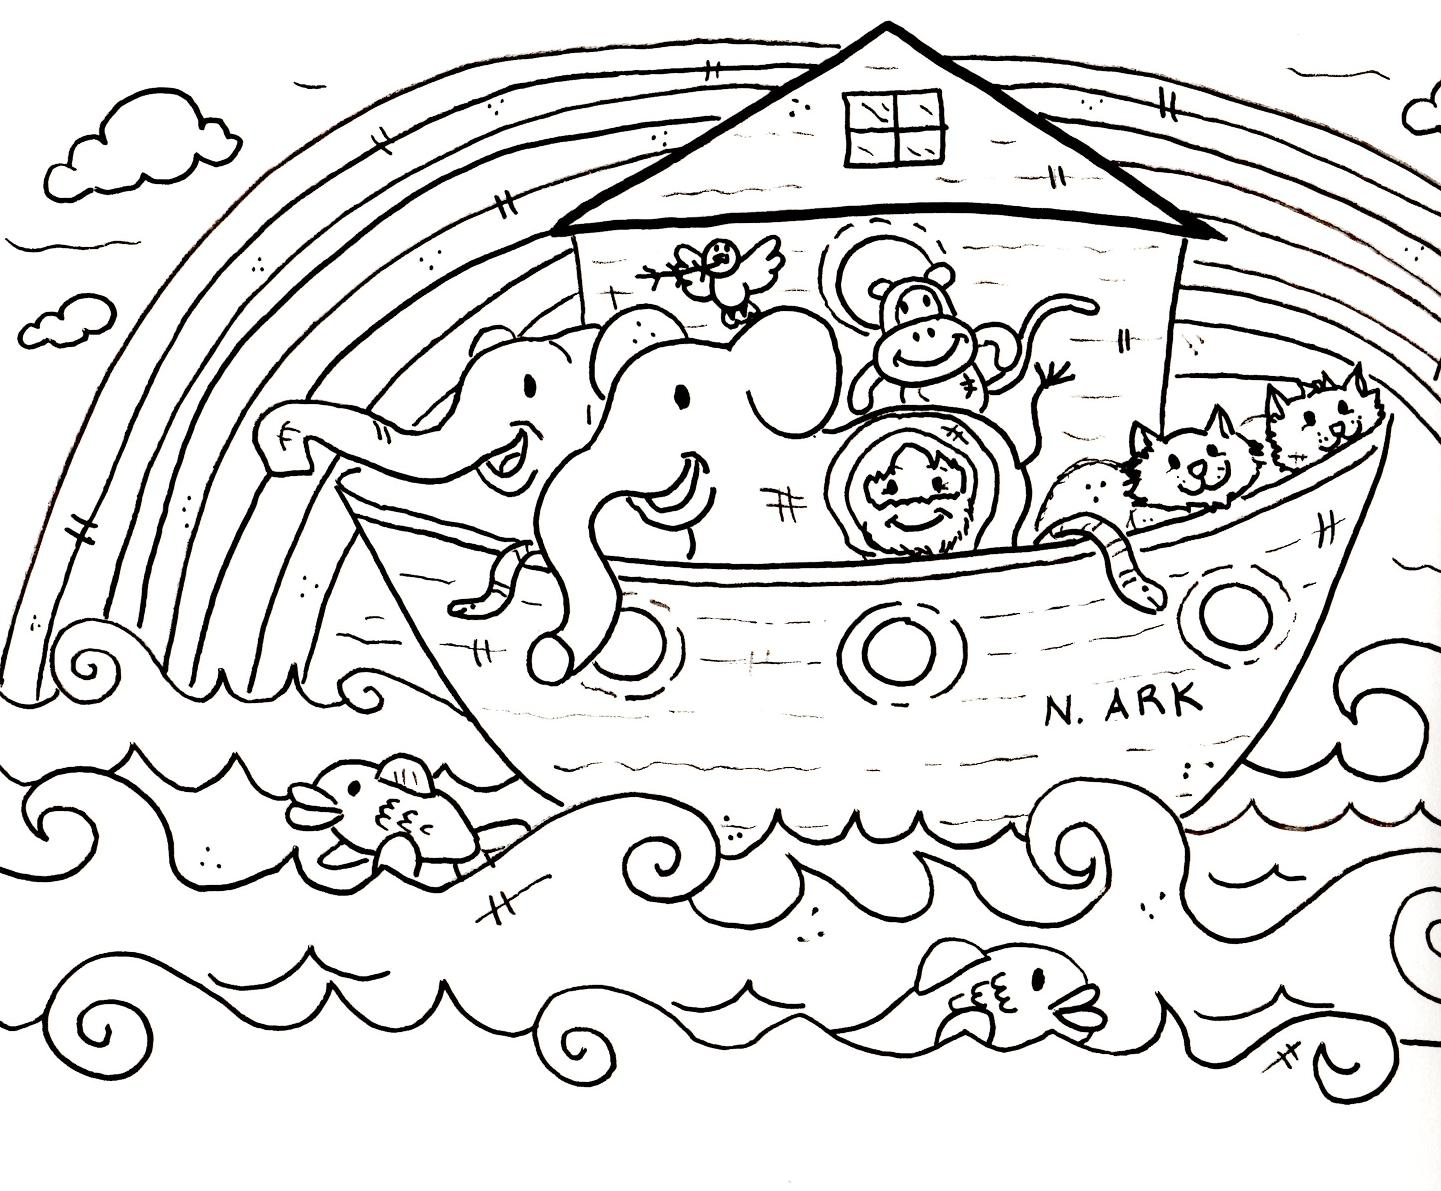 noah ark coloring page noah ark coloring pages to download and print for free